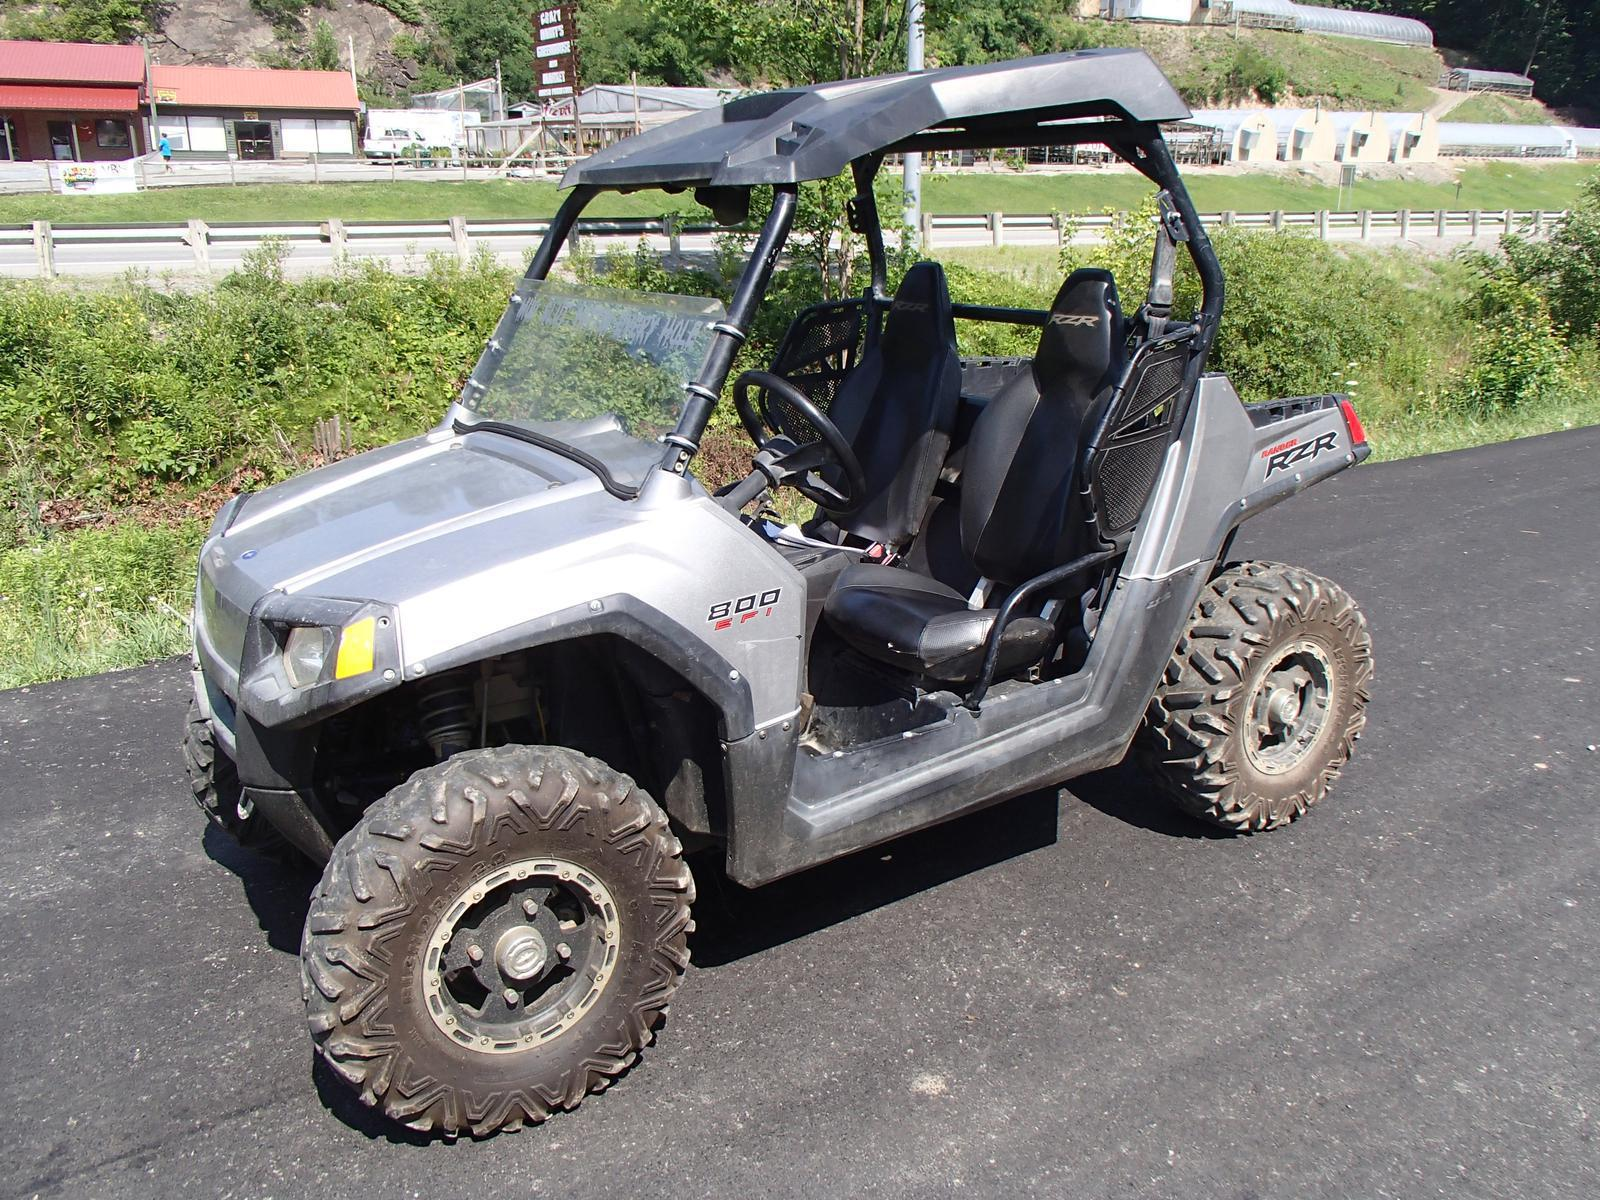 hight resolution of 2010 polaris rzr 800 le polaris industries 2010 polaris rzr 800 le